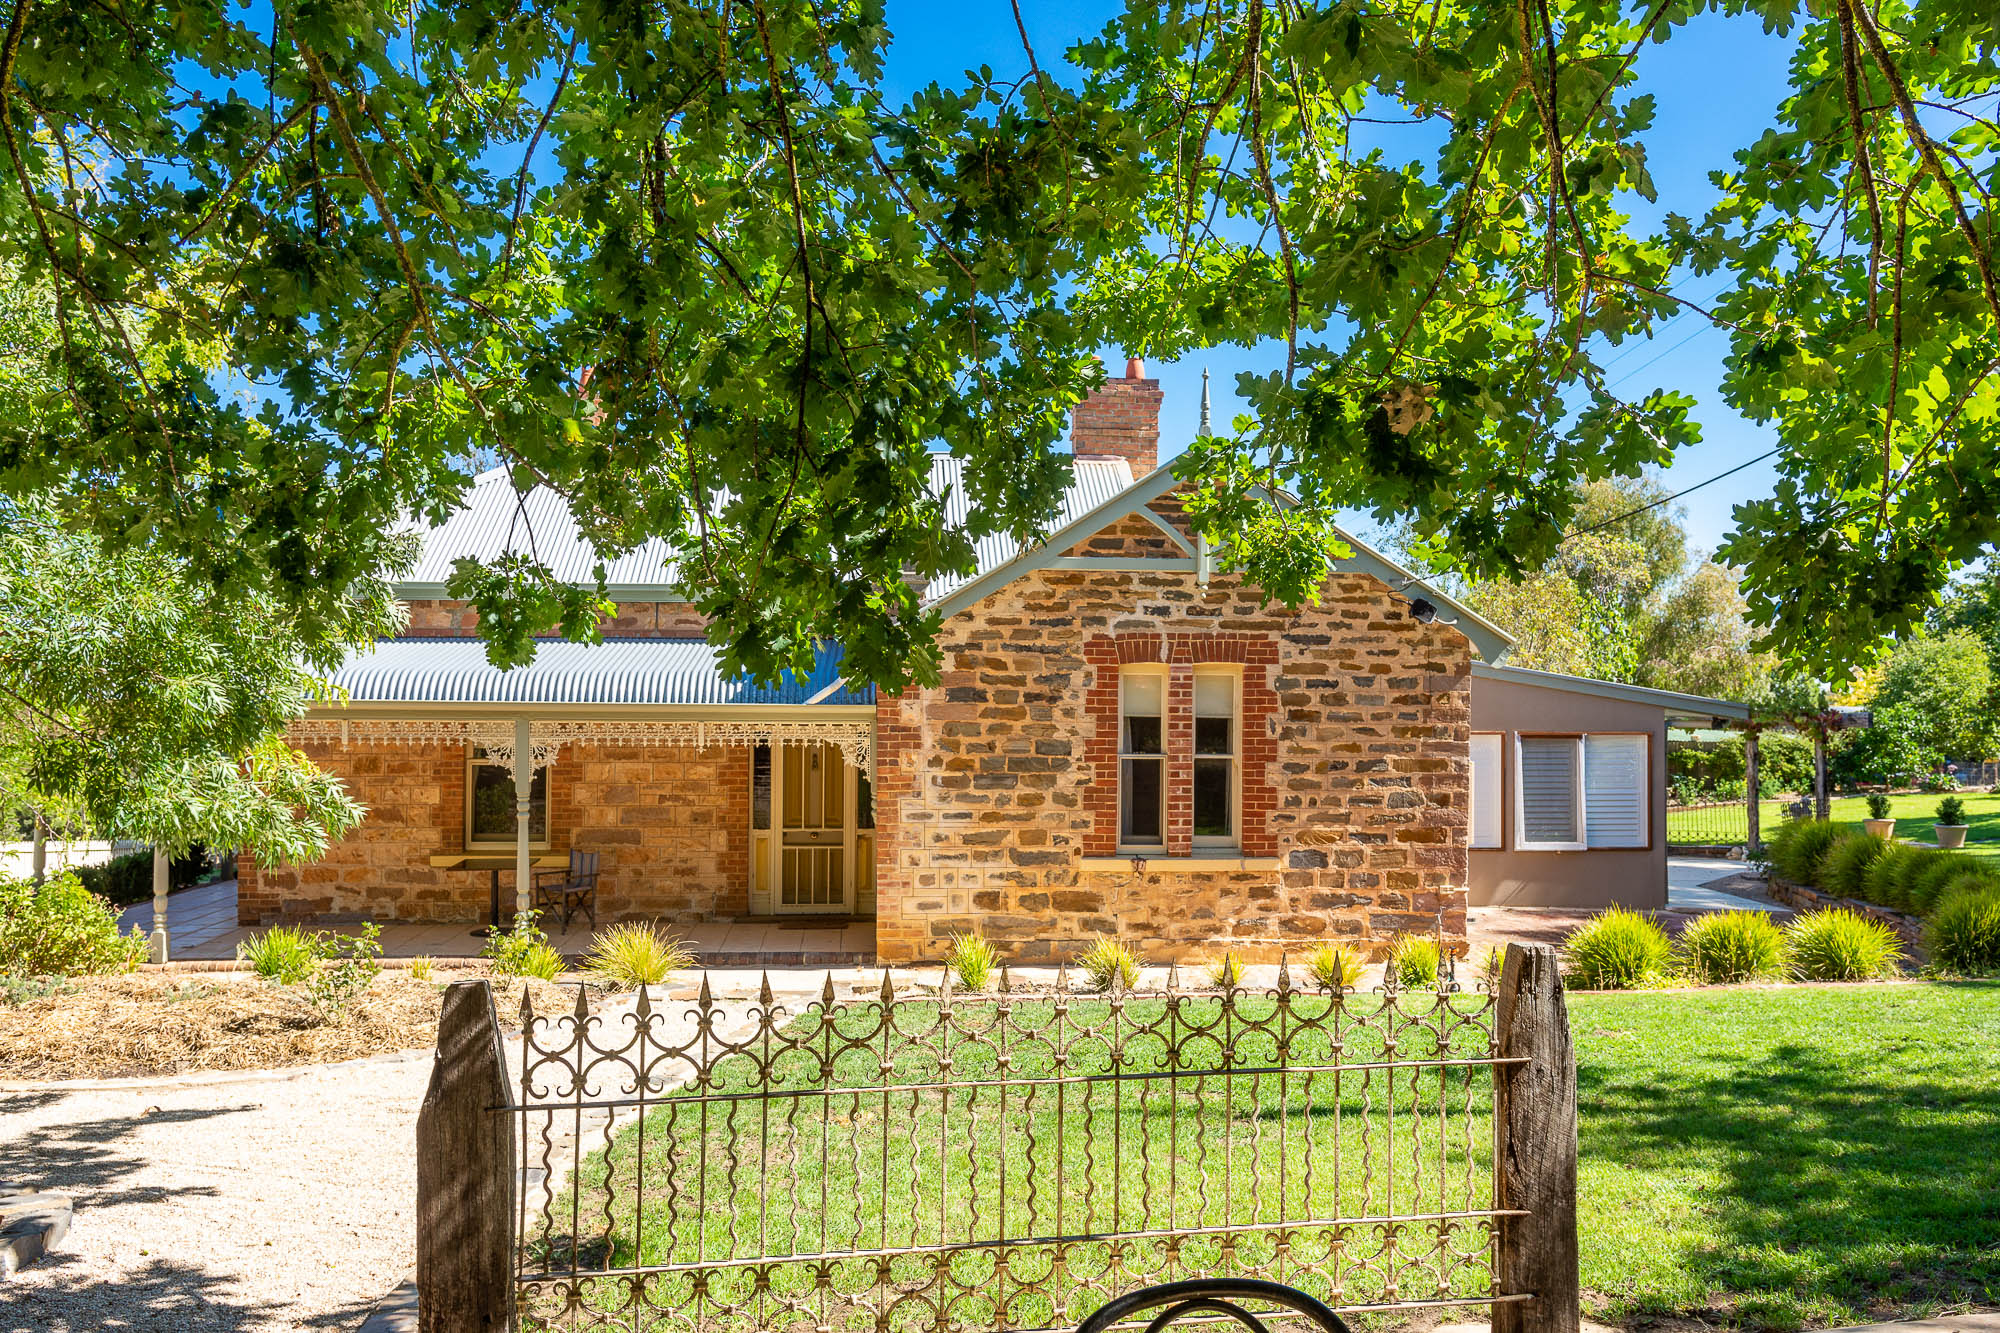 Morning Star, historic Adelaide Hills wedding venue minutes from Mt Barker, with formal gardens, Bluestone courtyard and rustic stables bar and reception space.